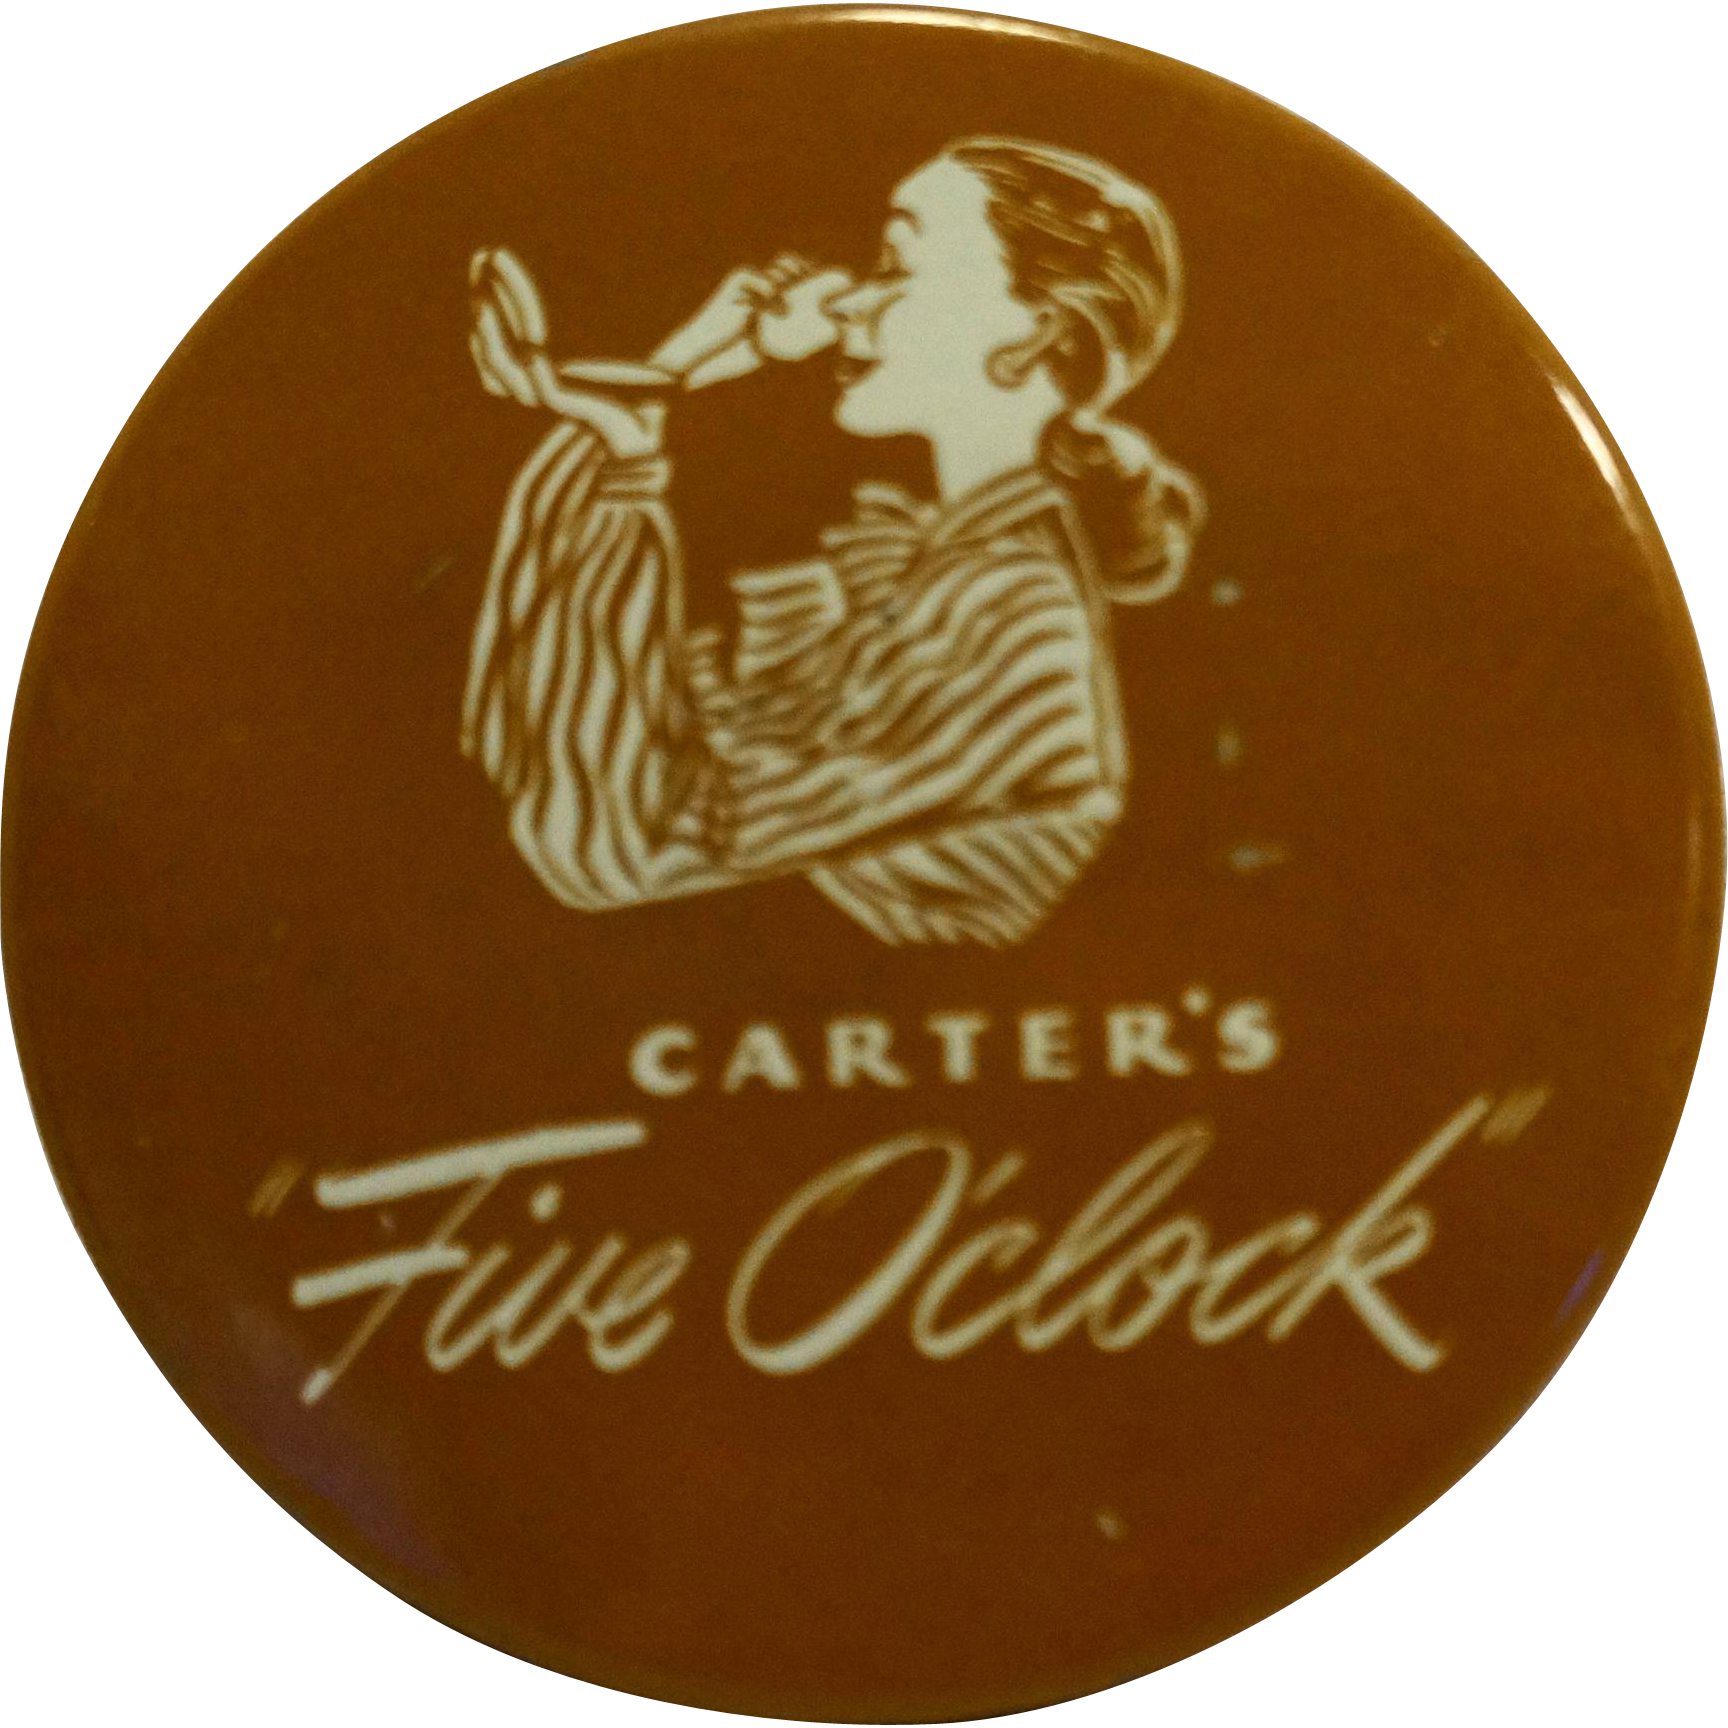 Carters Five O'clock Typewriter Ribbon Tin Royal Portable Black Record Medium